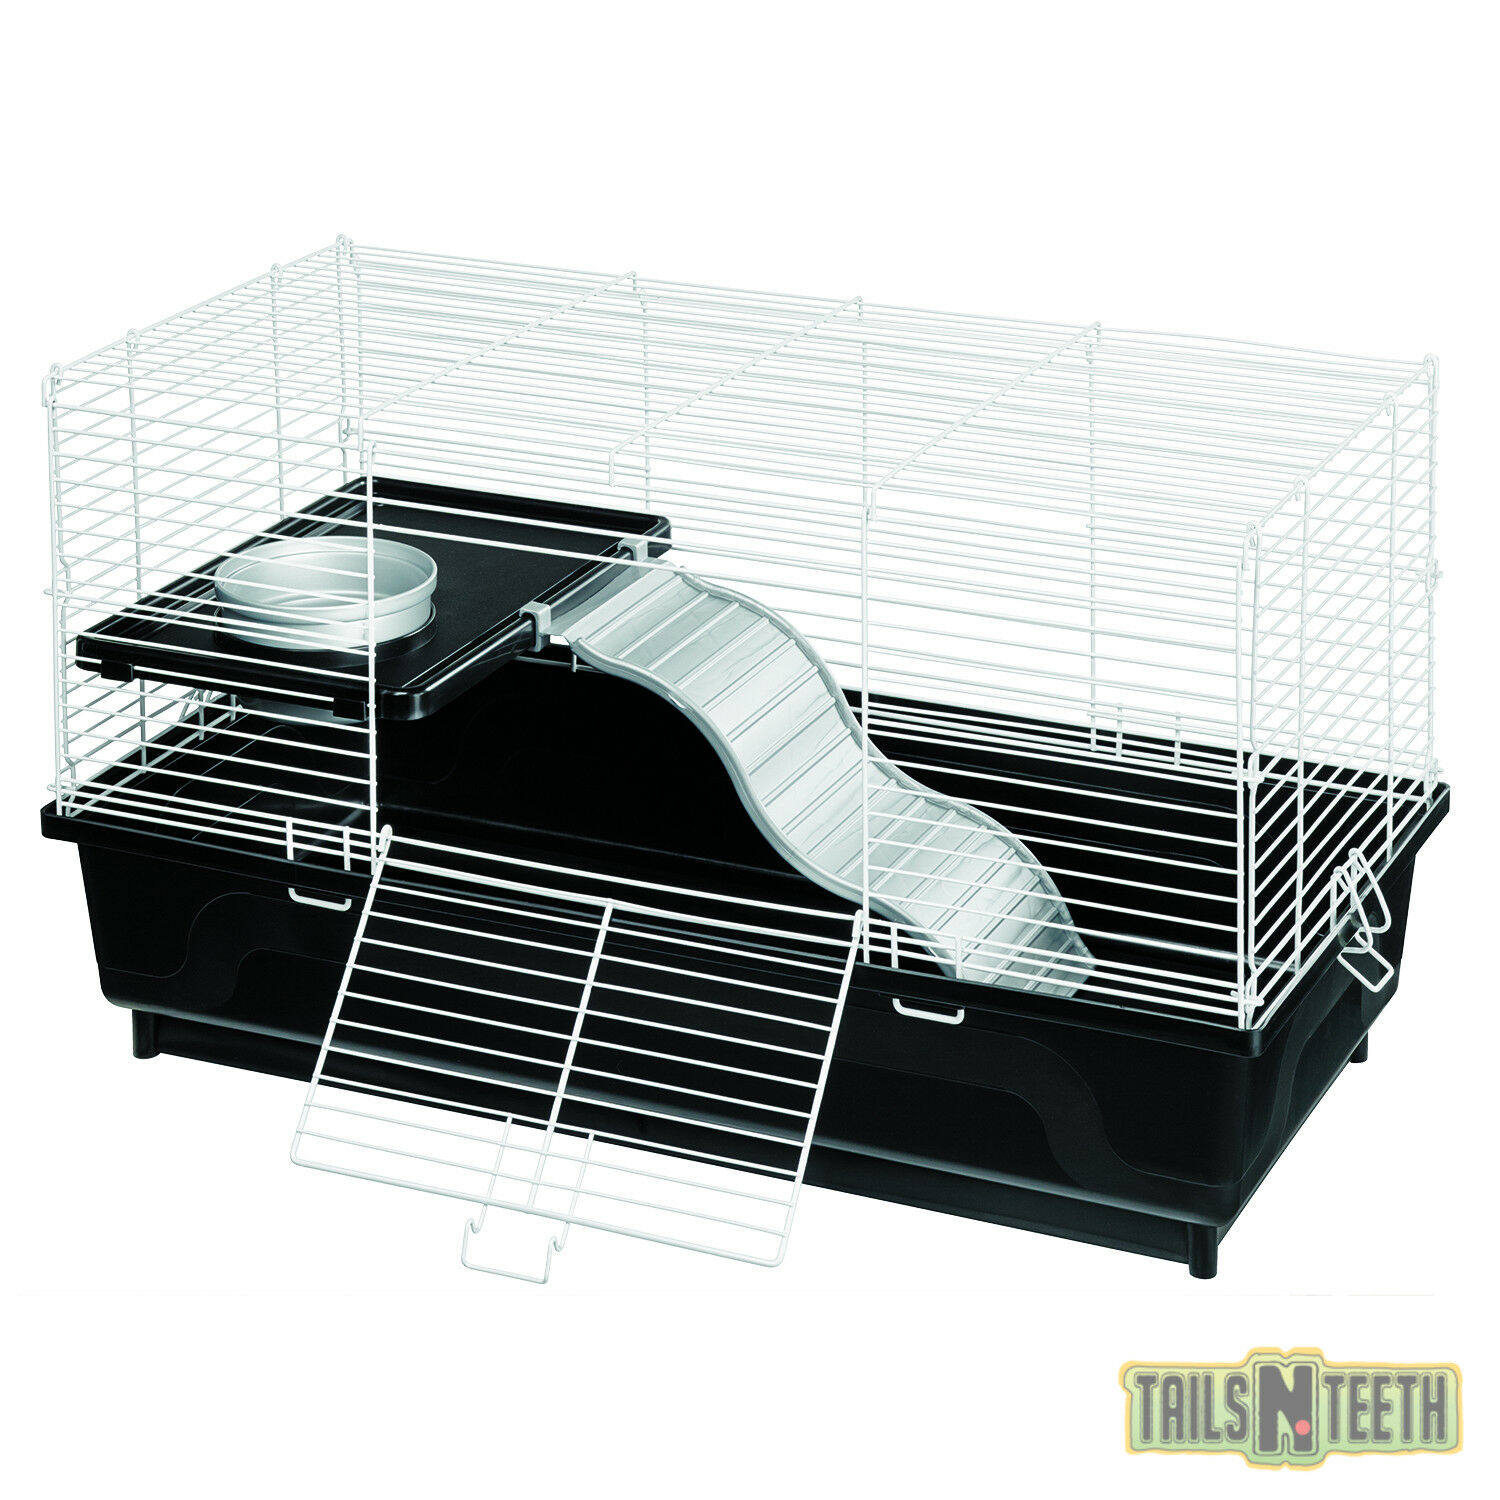 KayTee Rat Home - Unique Design Design Design Ensures Security - Chew-Proof Latches 1f154a